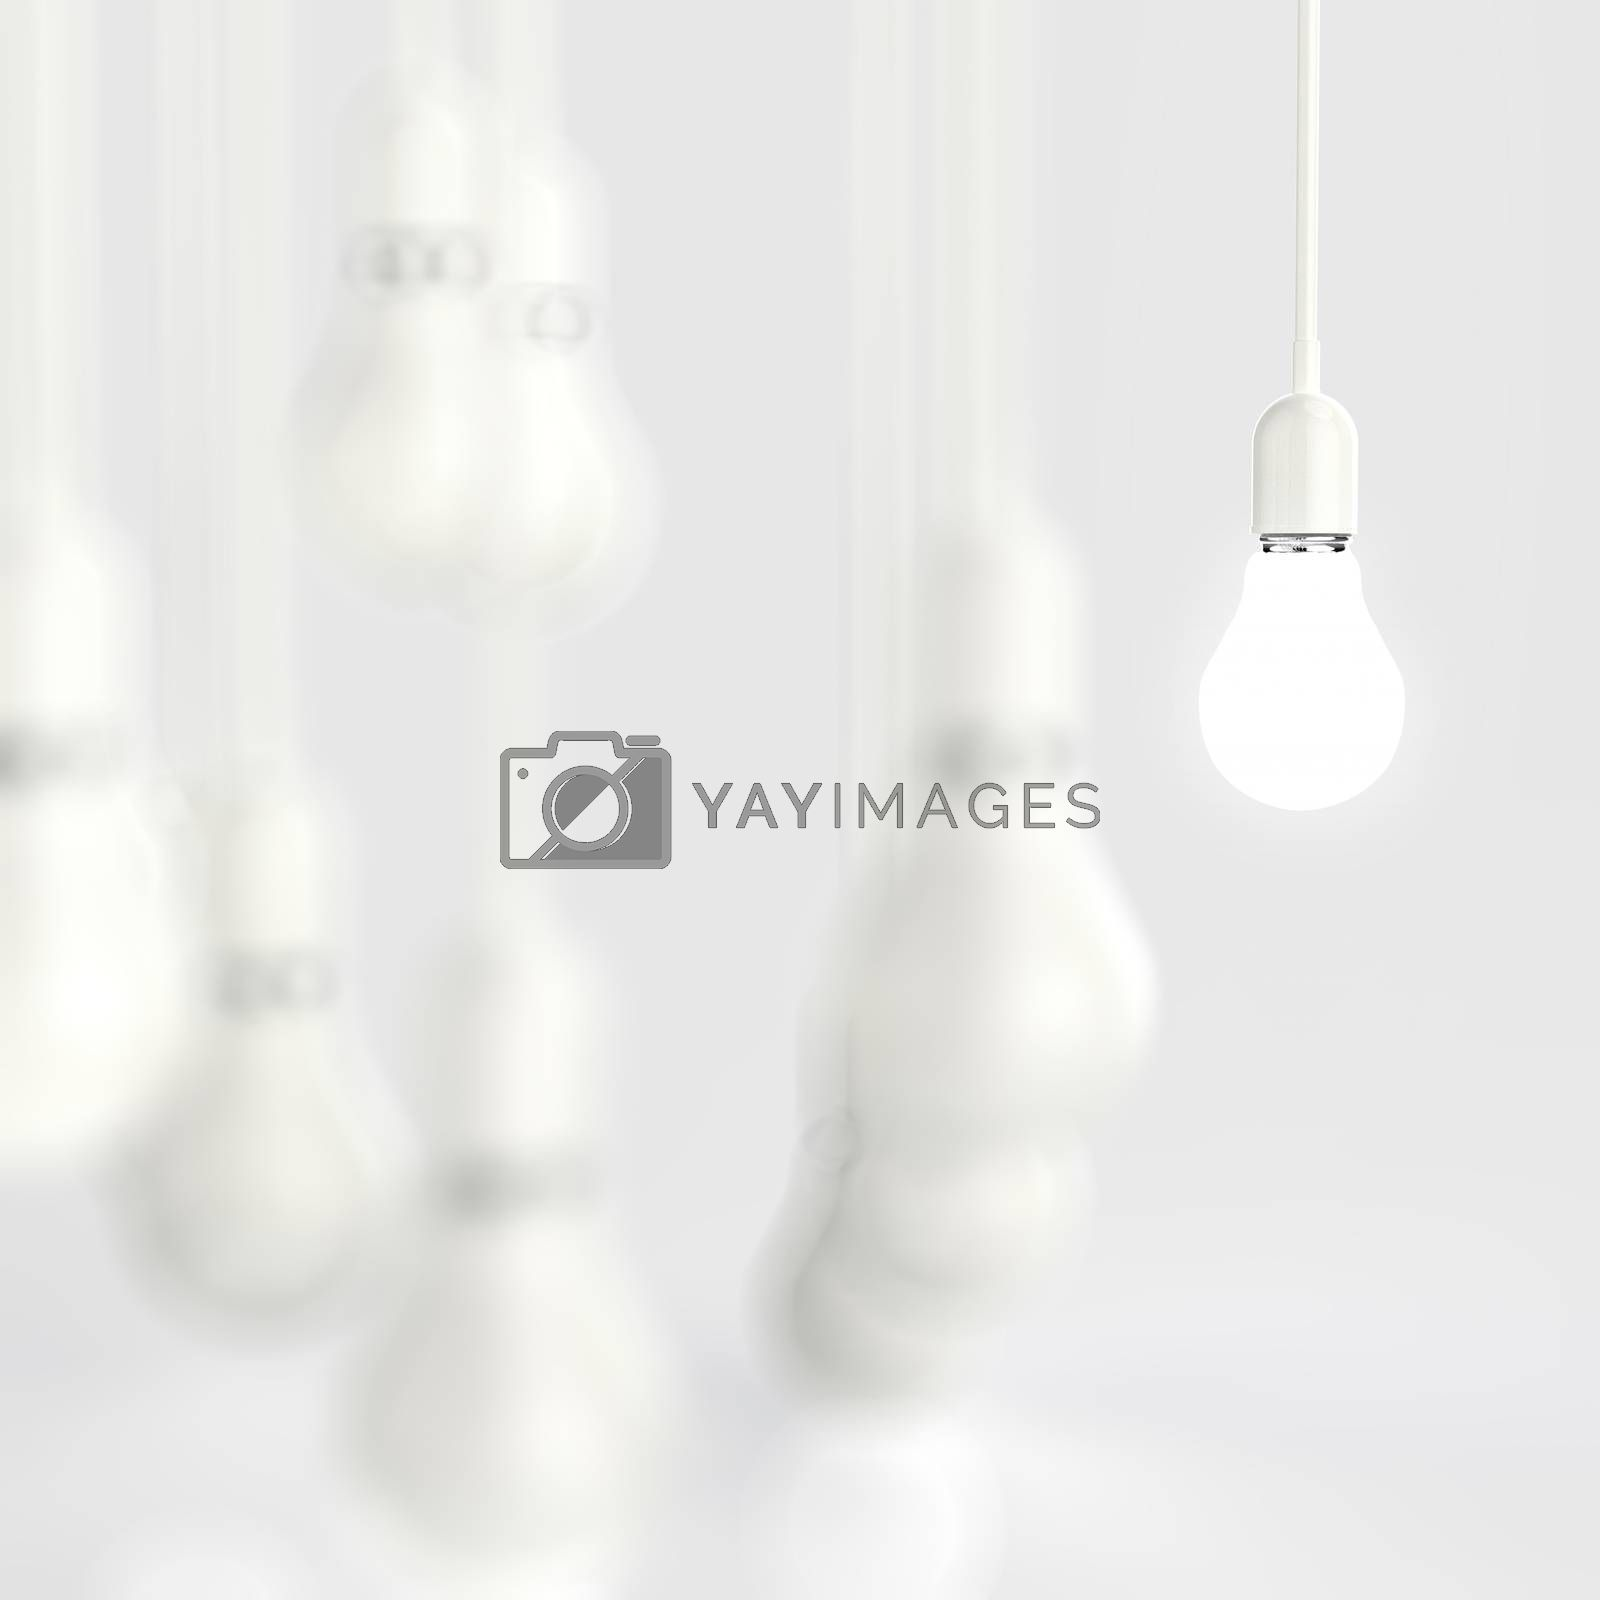 Royalty free image of creative idea and leadership concept light bulb  by everythingpossible